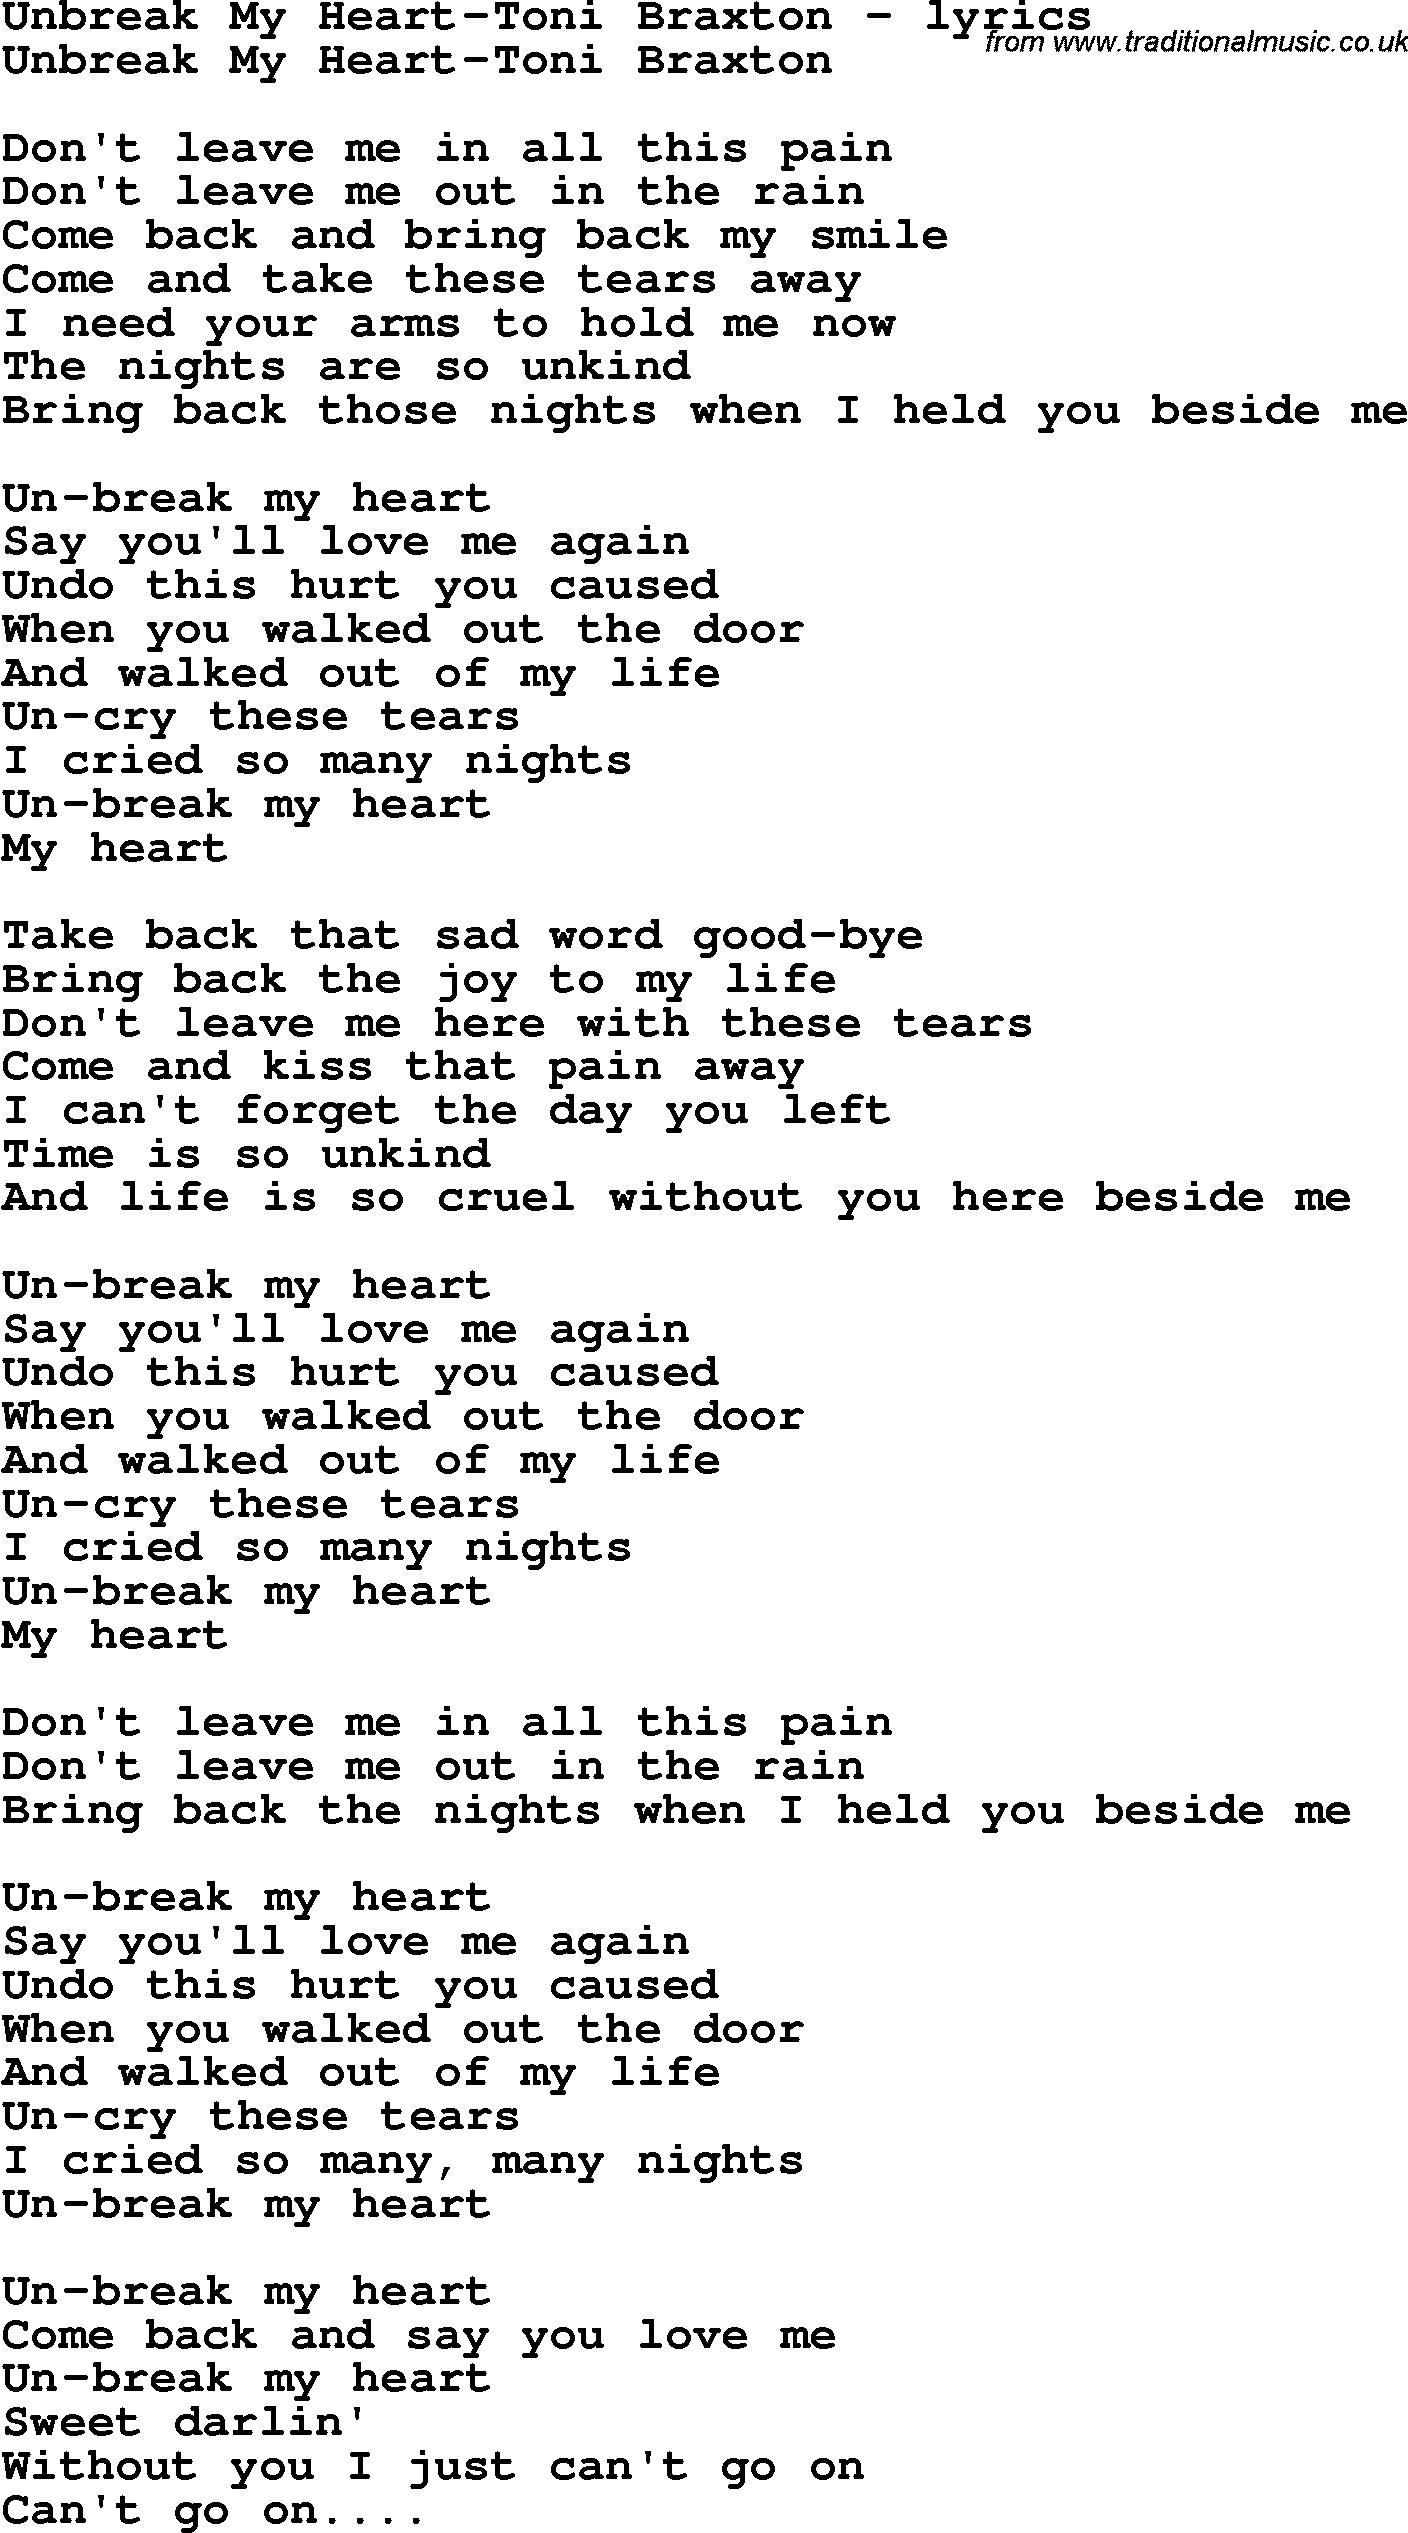 Unbreak My Heart - Toni Braxton LYRICS - YouTube